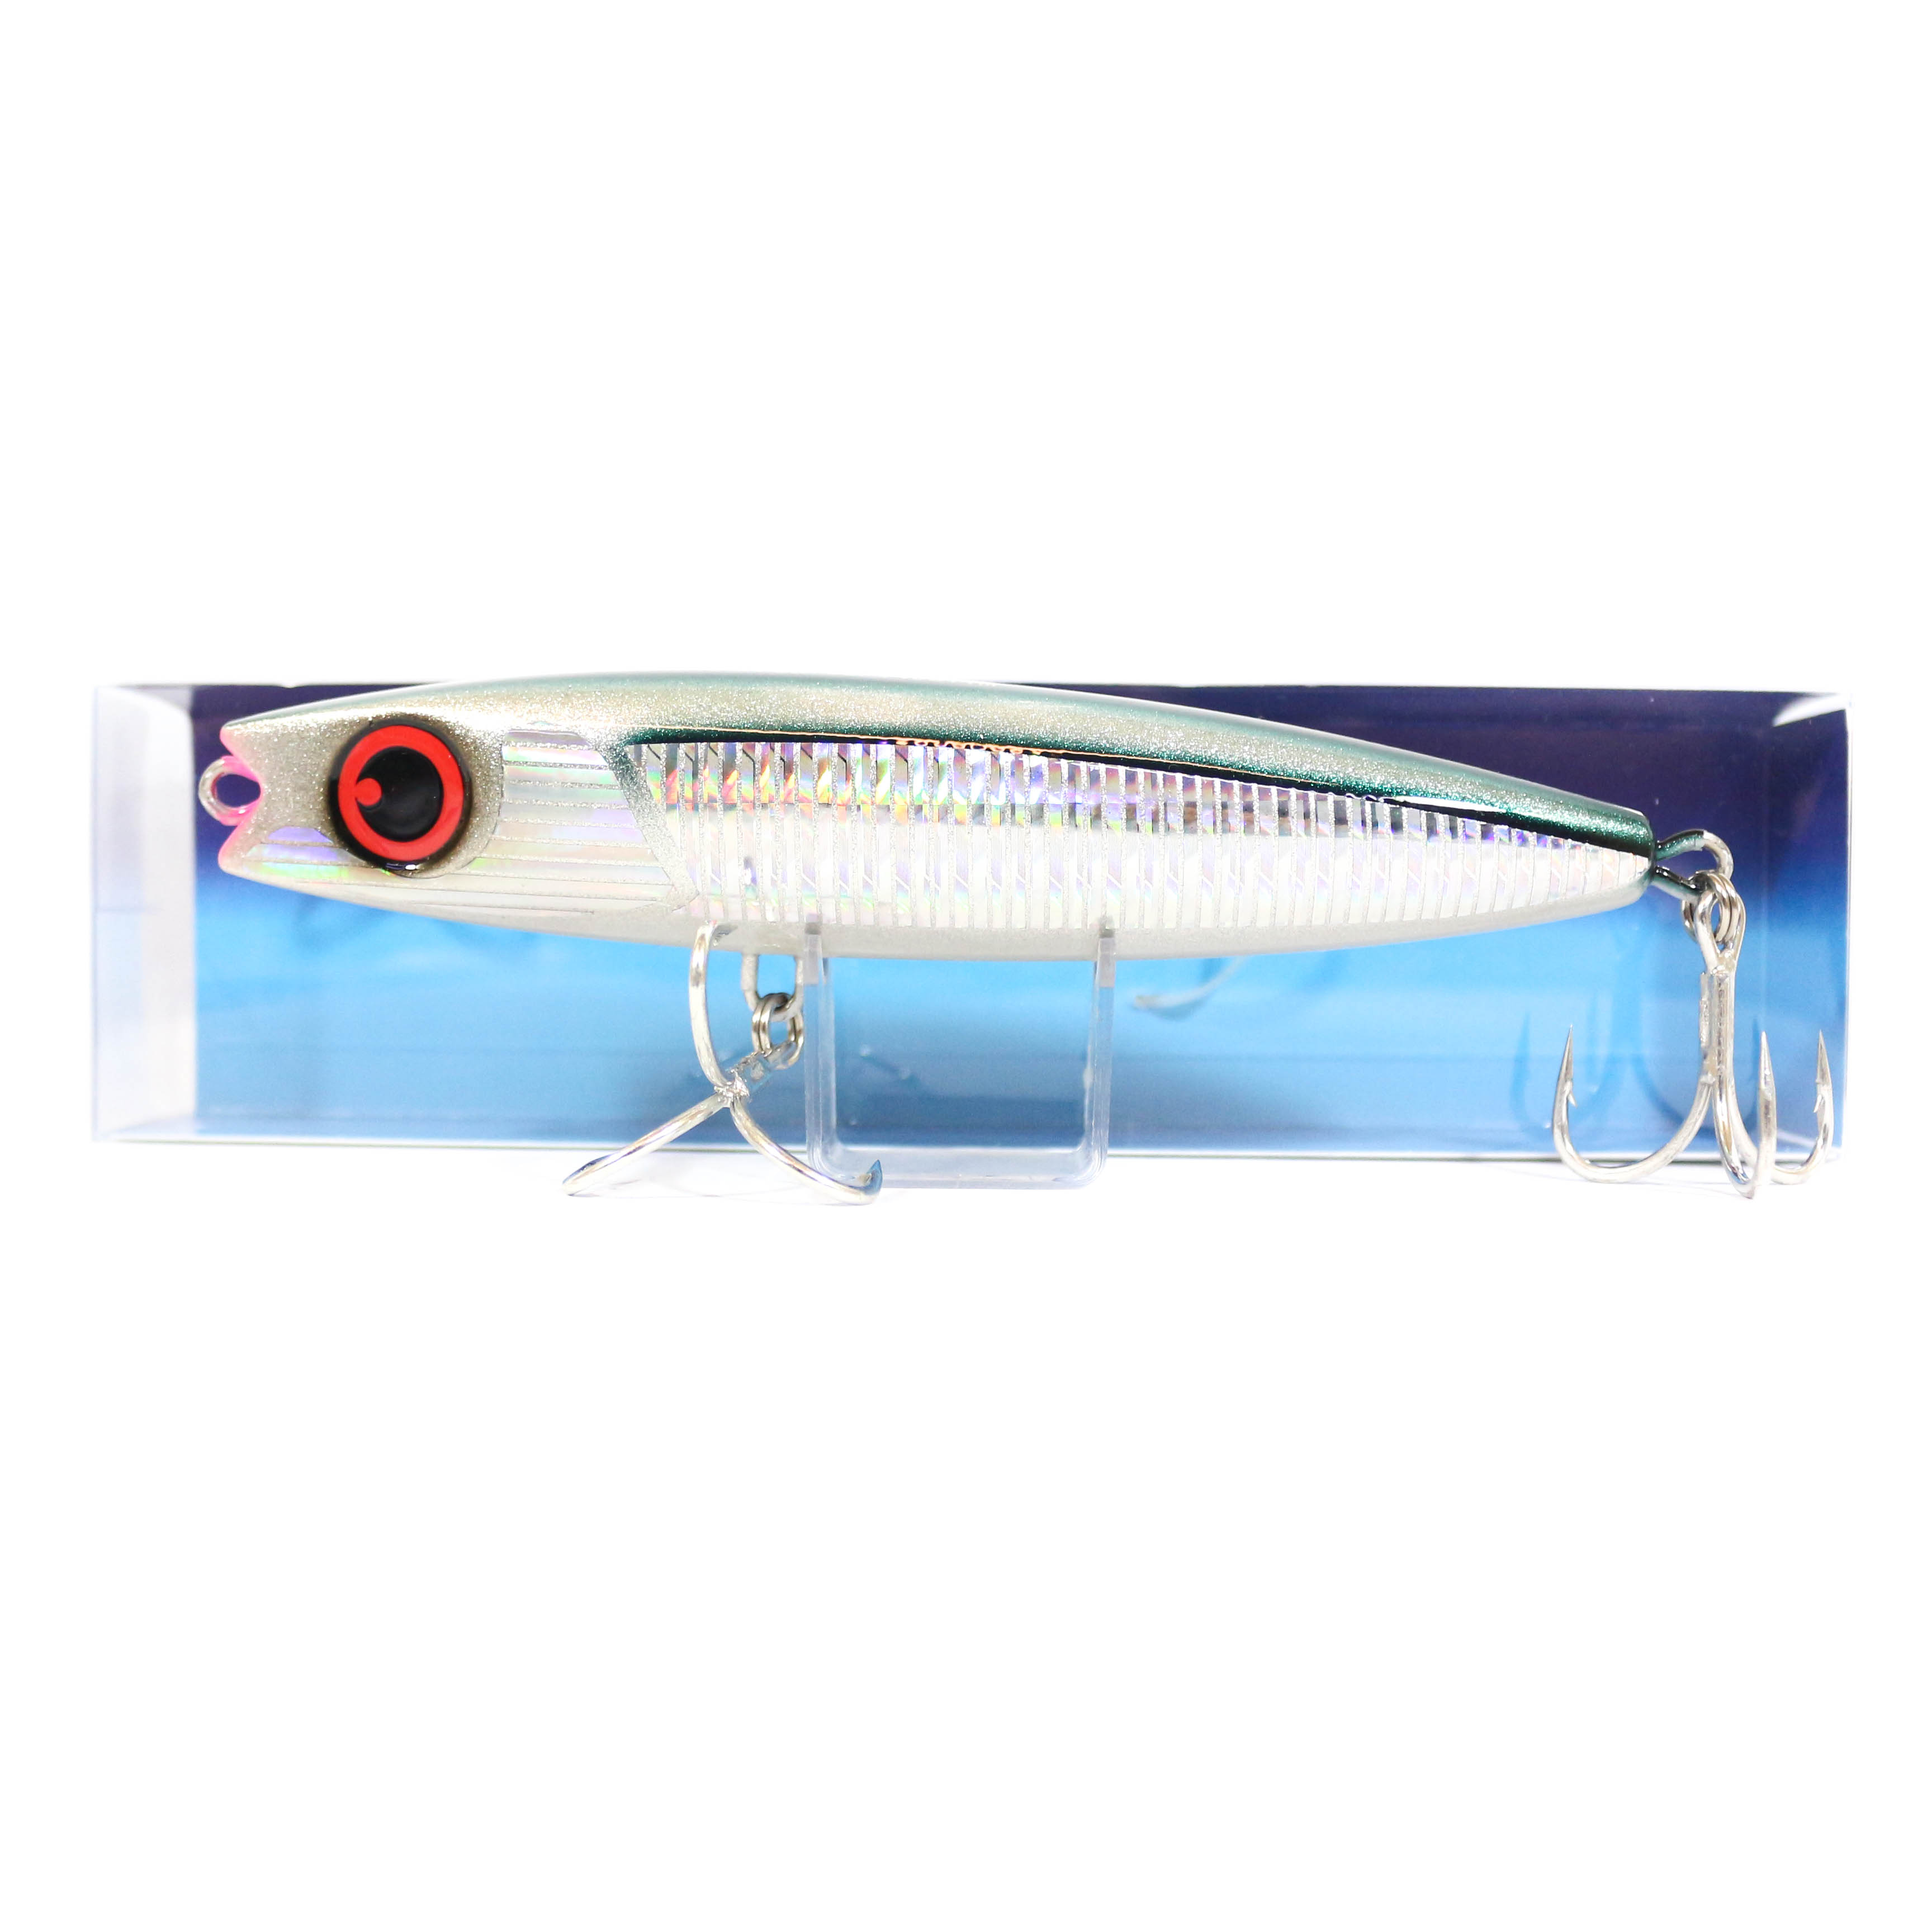 FCL Labo Stick Bait CSP 145 Slim Floating Lure 46 grams SA (0307)